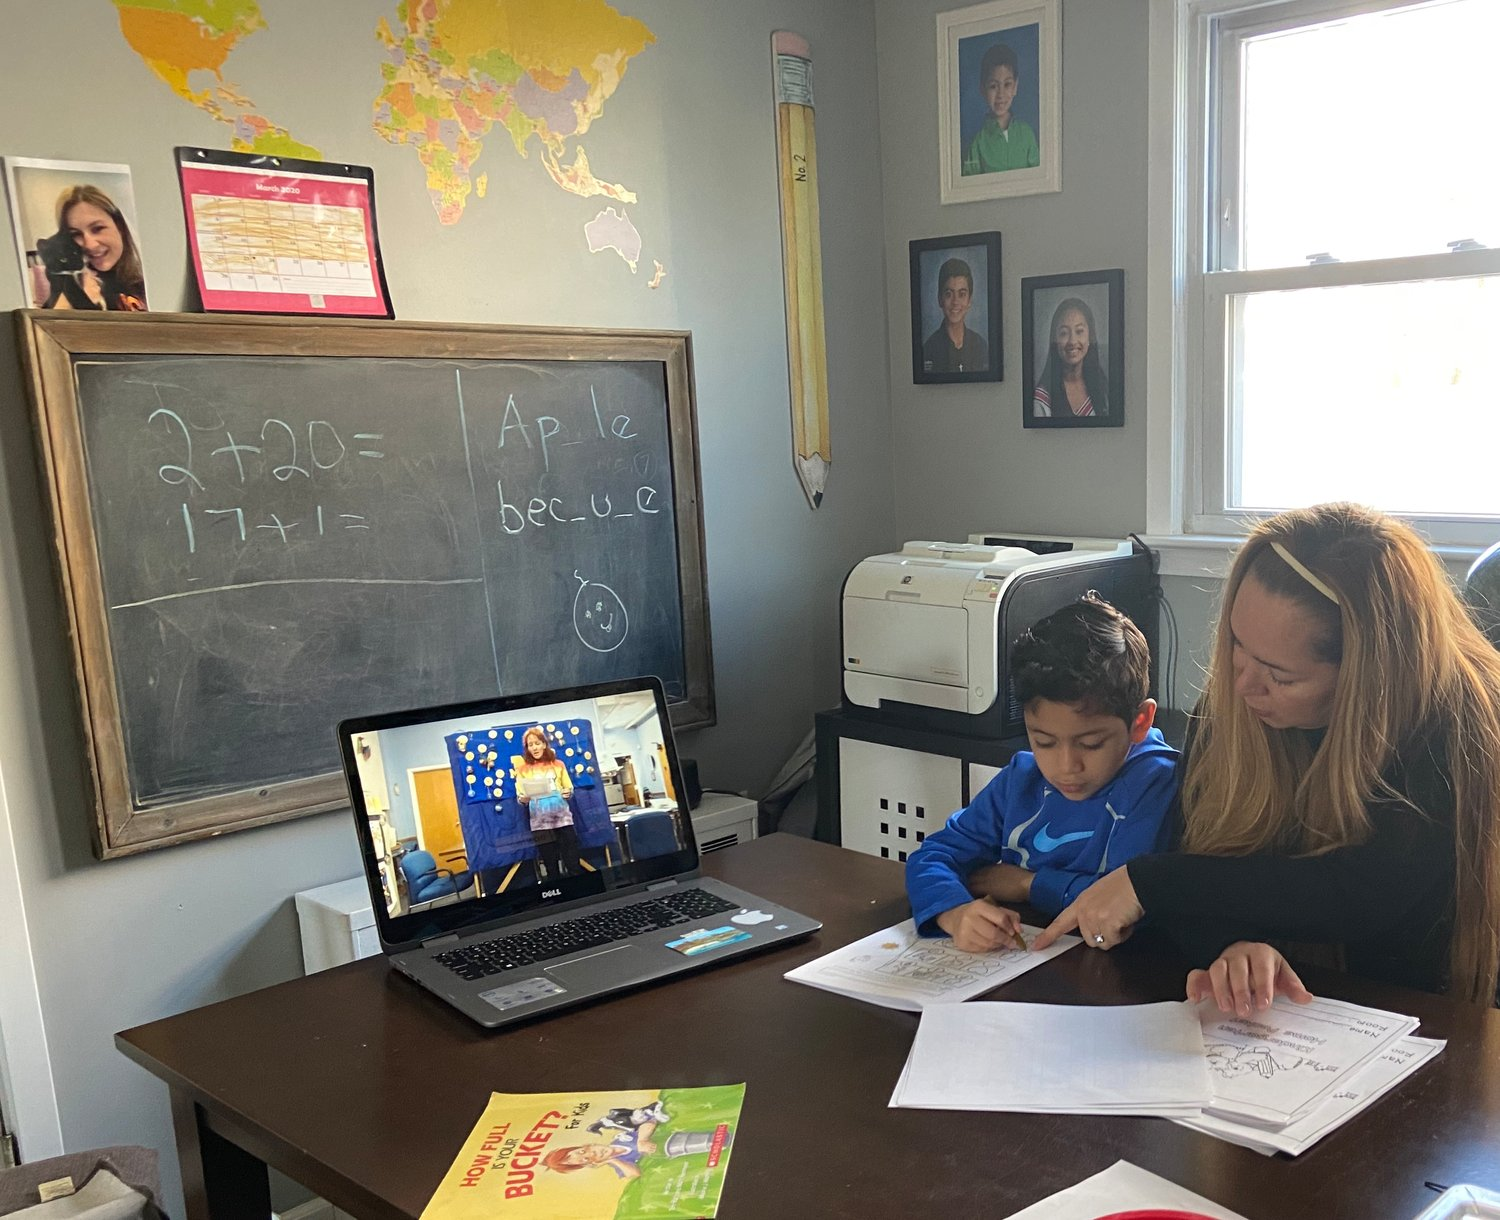 Students in the East Meadow School District have been adjusting to remote learning. Patsy Mustafich helped her son Sebastian a kindergartner at McVey Elementary School, complete a worksheet while they watched the morning announcements on YouTube.